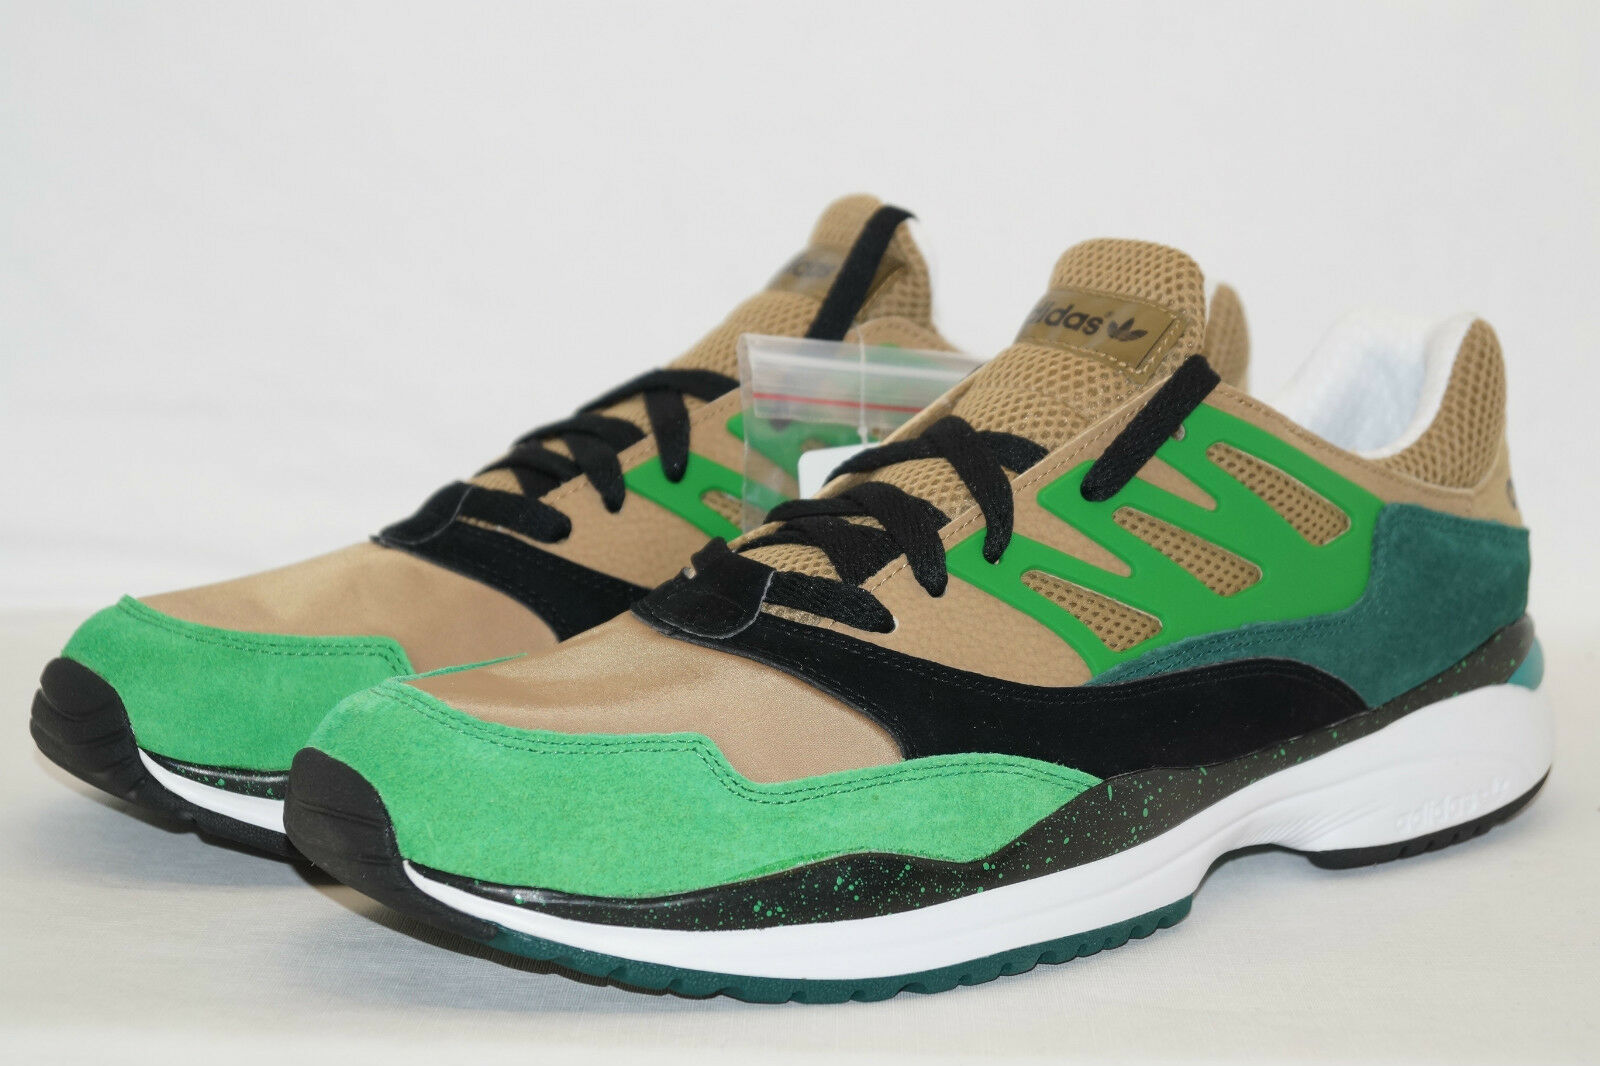 Adidas Originals torsion allegra verde marrón negro Forest